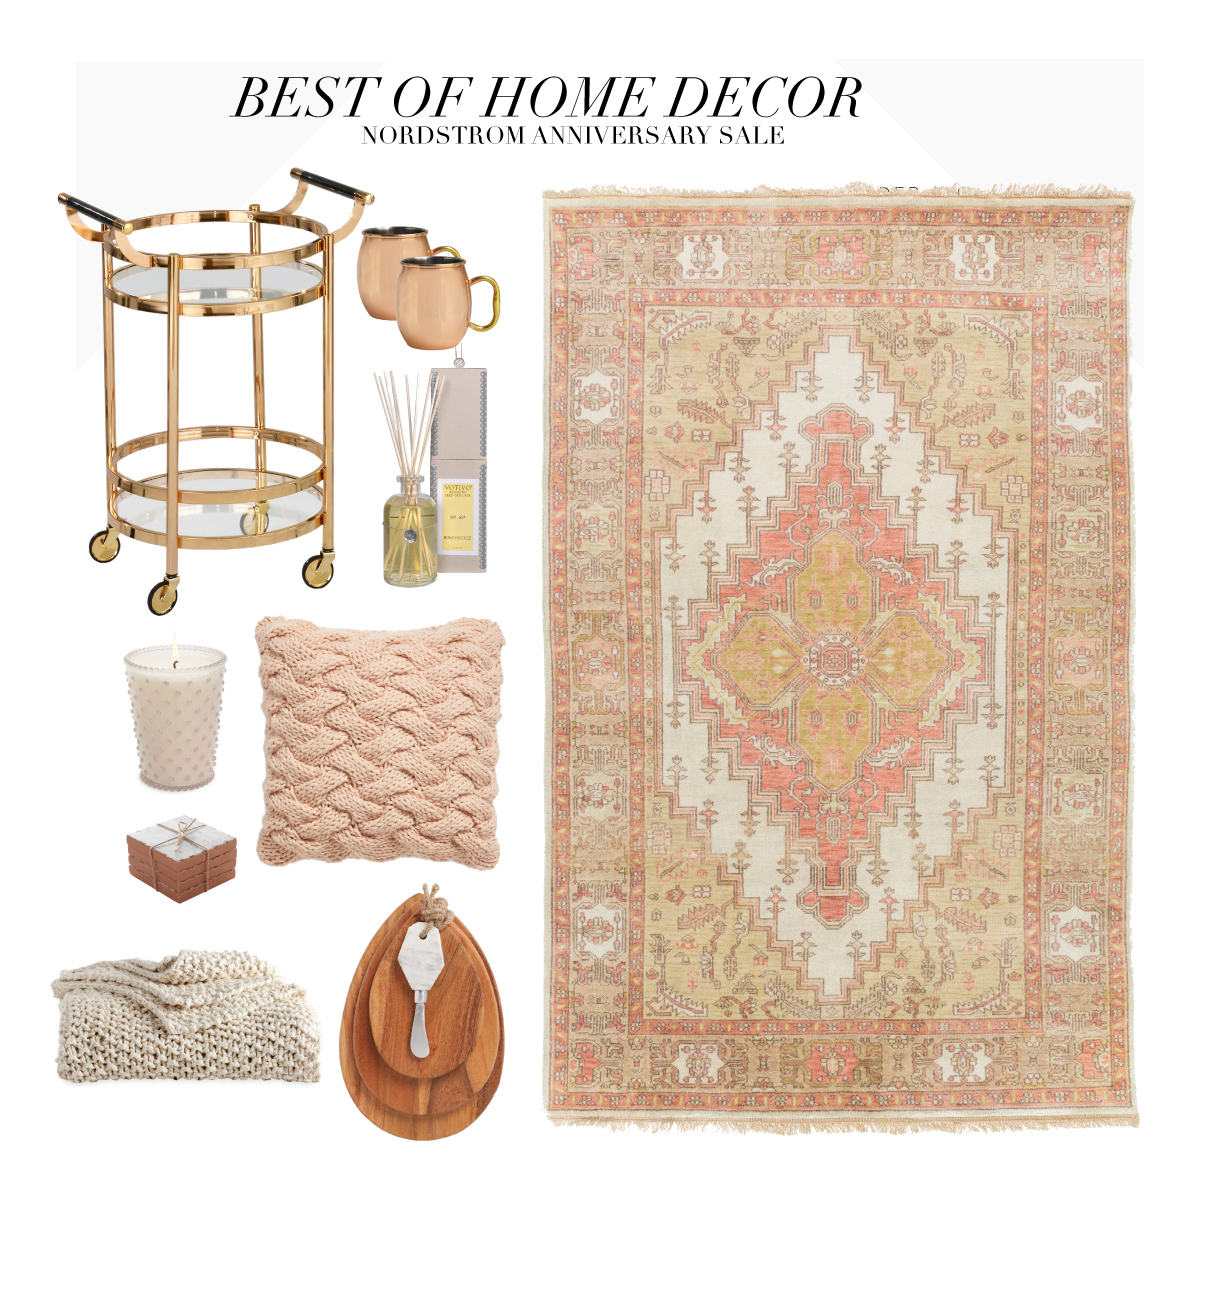 Favorite home decor from the nordstrom sale cella jane for Home decor items on sale